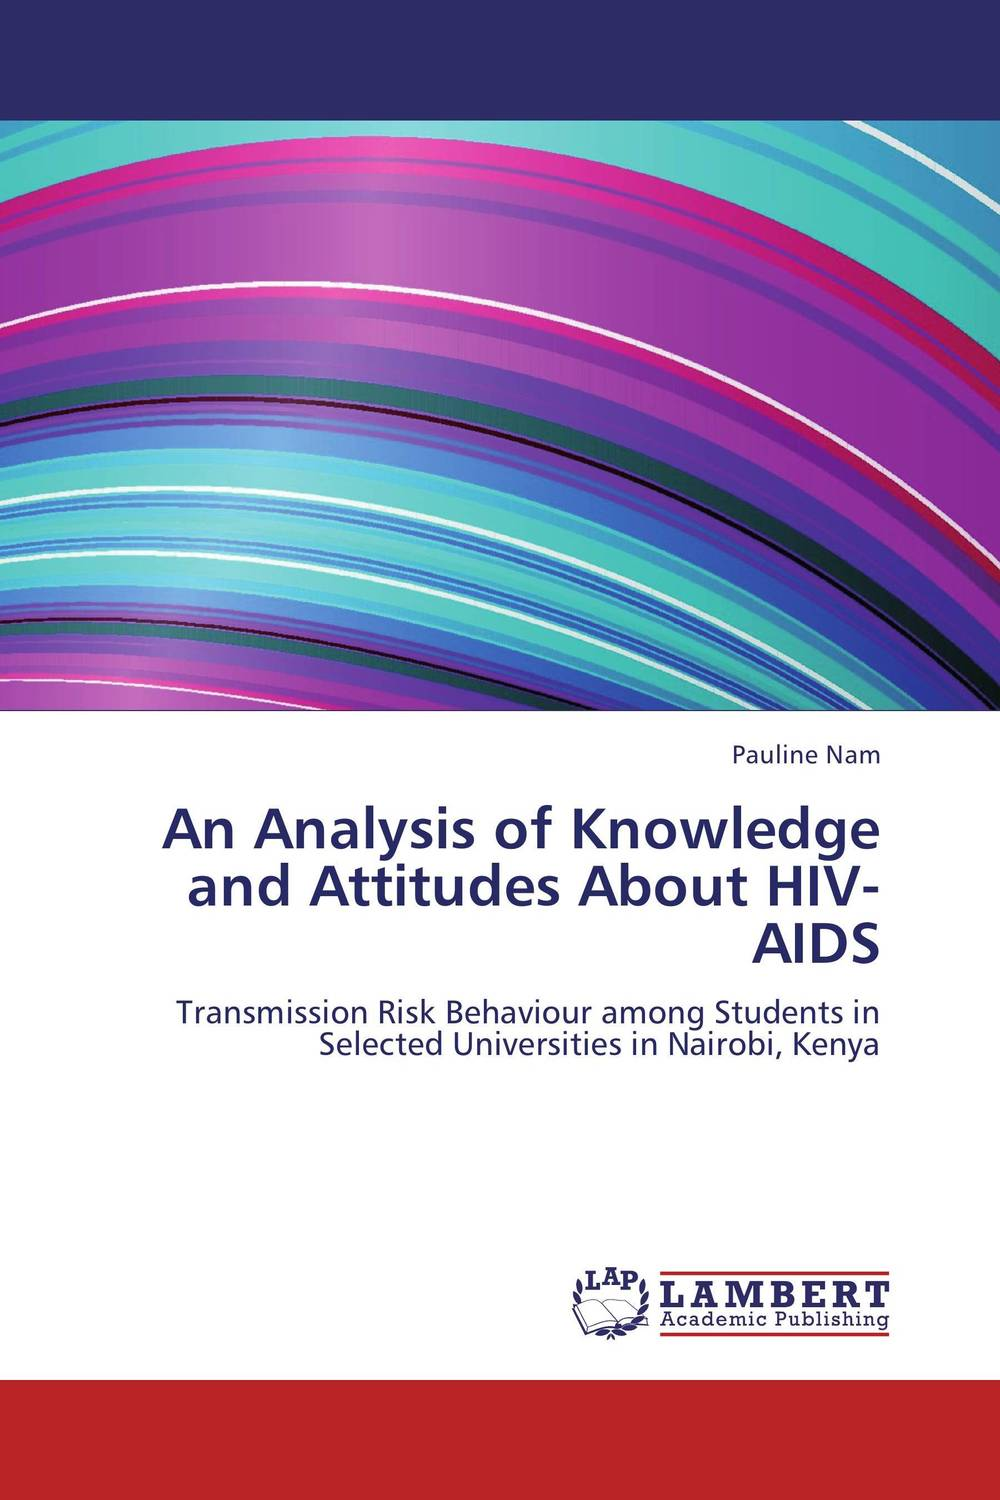 An Analysis of Knowledge and Attitudes About HIV-AIDS survival analysis and stochastic modelling on hiv aids data